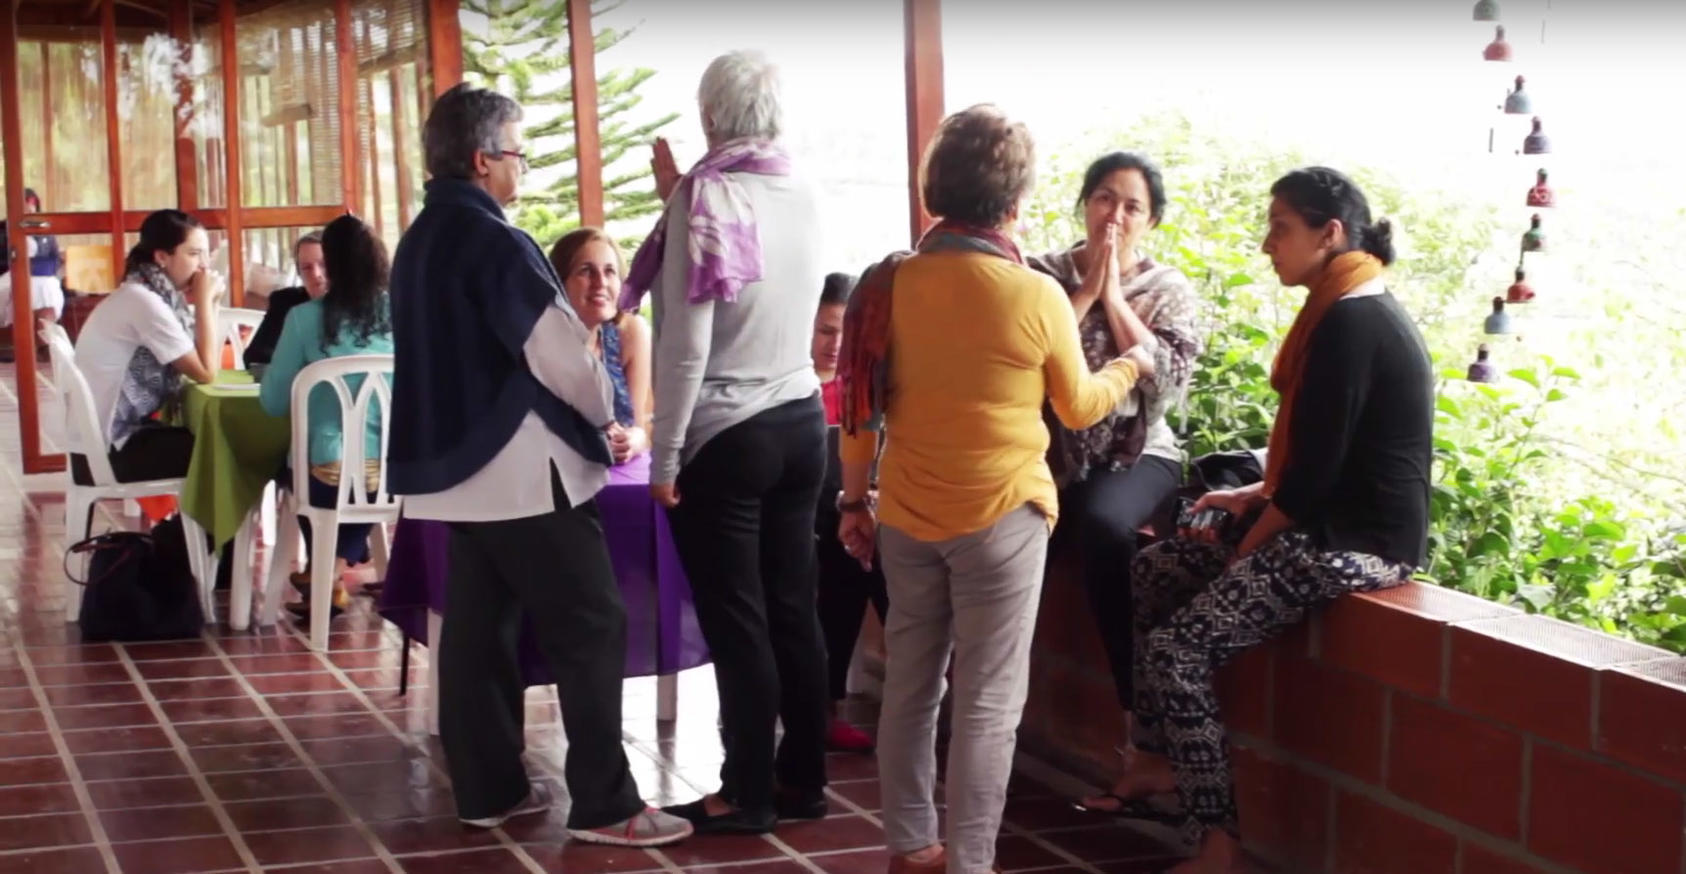 Colombian women mediators taking part in a dialogue in Colombia. Photo by USIP